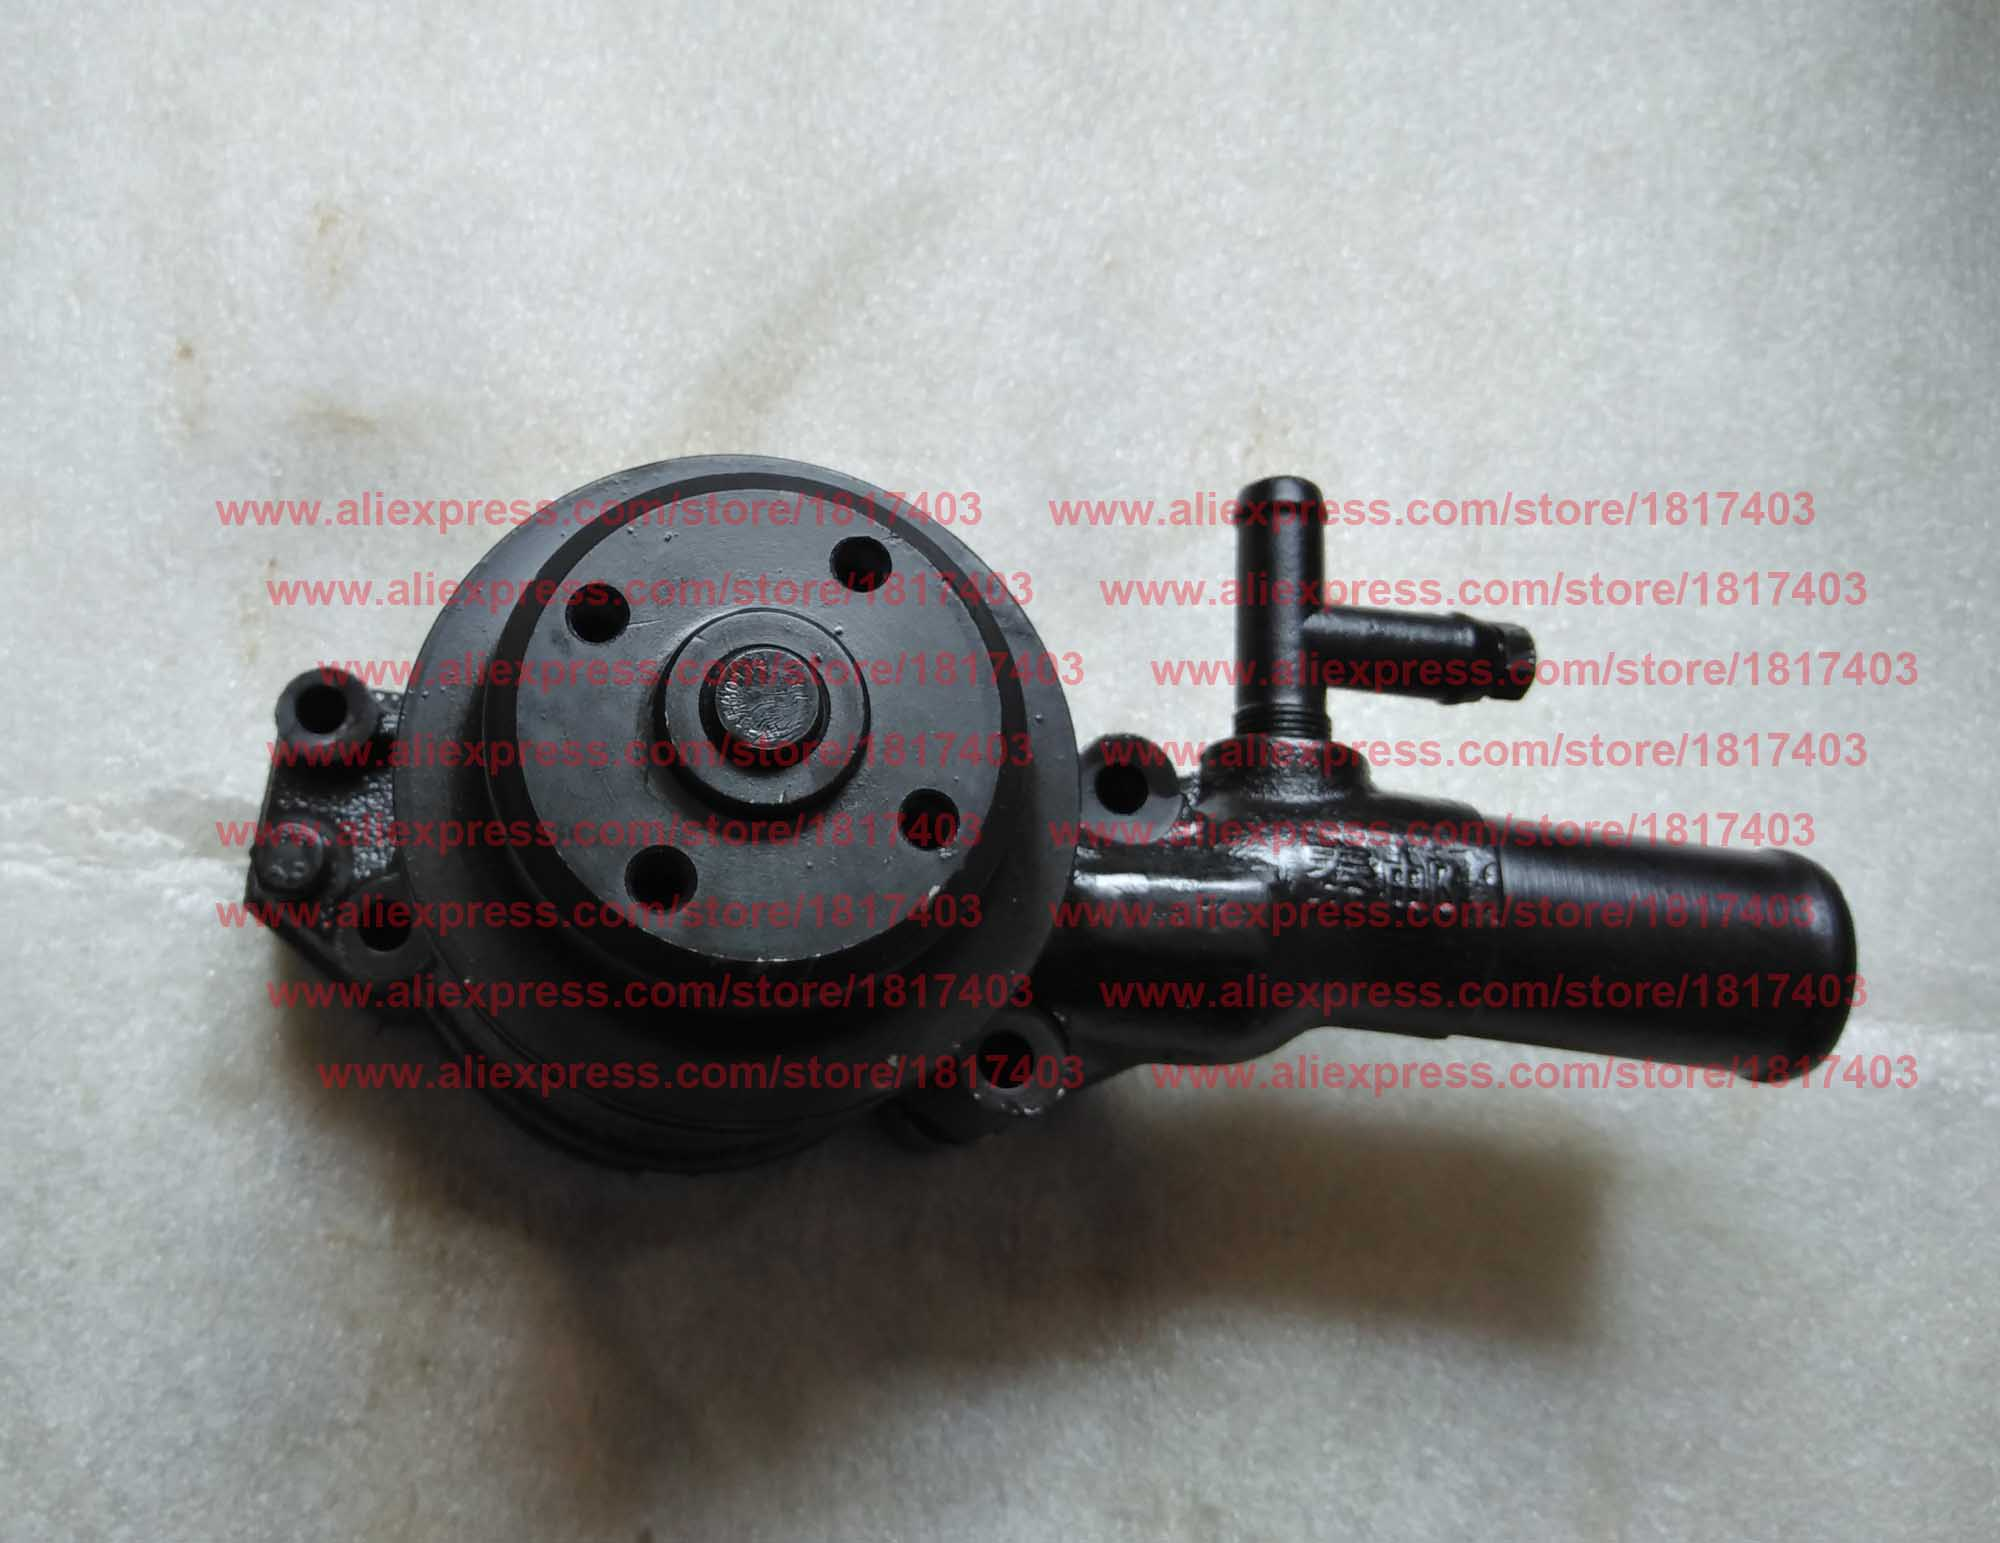 YND4BT 11100 Water pump 1 V belt channel model for Yangdong YND485 and YND4BT diesel engines